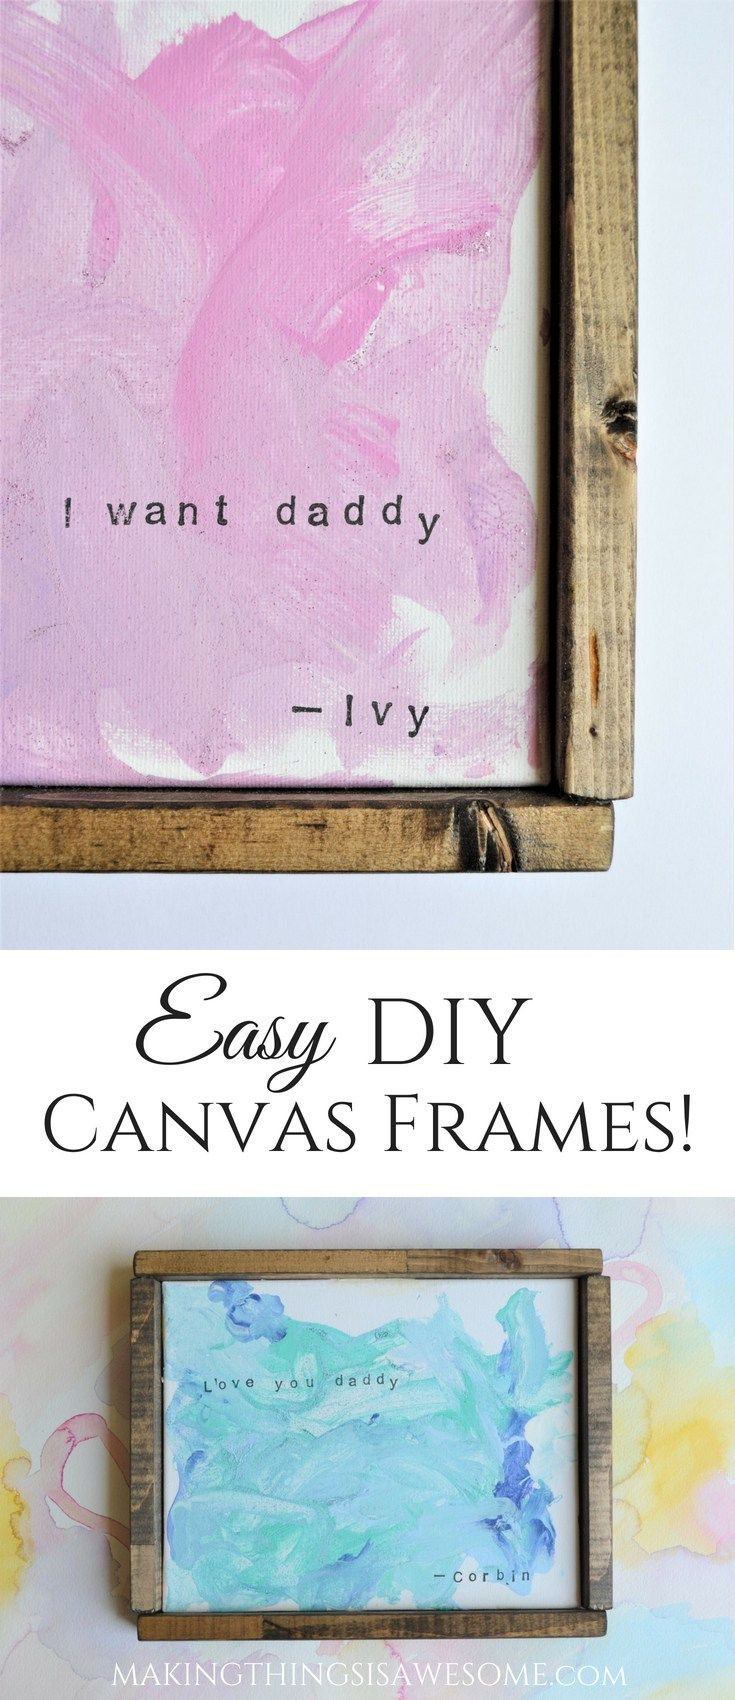 Canvas Painting Ideas for Kids With Easy DIY Canvas Frames is part of Kids Crafts Canvas Frames - This Canvas Painting Ideas for Kids is an awesome way to create kids art, that you actually want to hang on your walls! They also make an great DIY gift idea for all of your lovely friends and family!